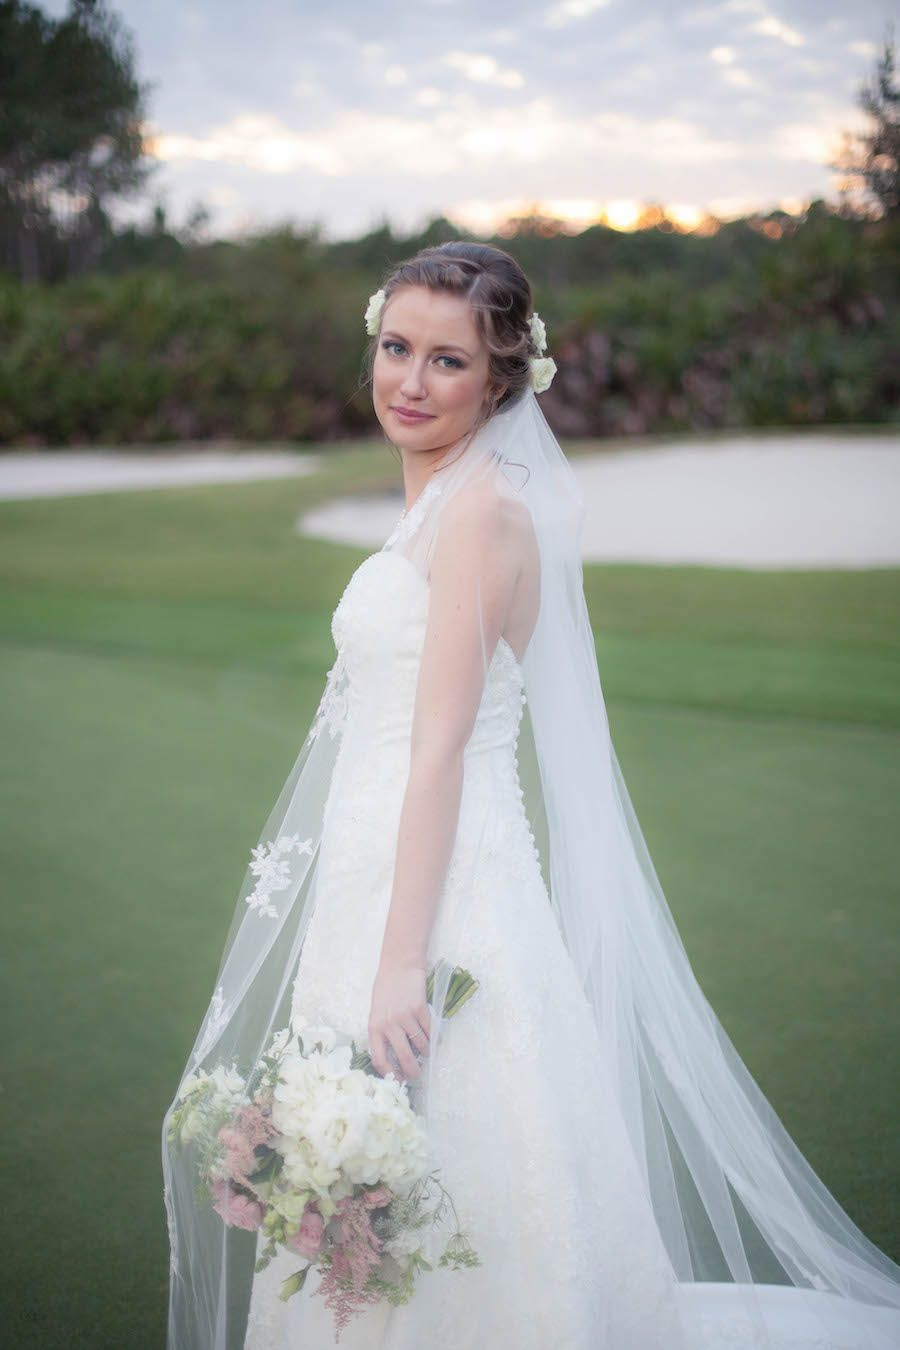 Bridal Wedding Portrait In Ivory Alfred Angelo Dress With Lace Overlay And Pink